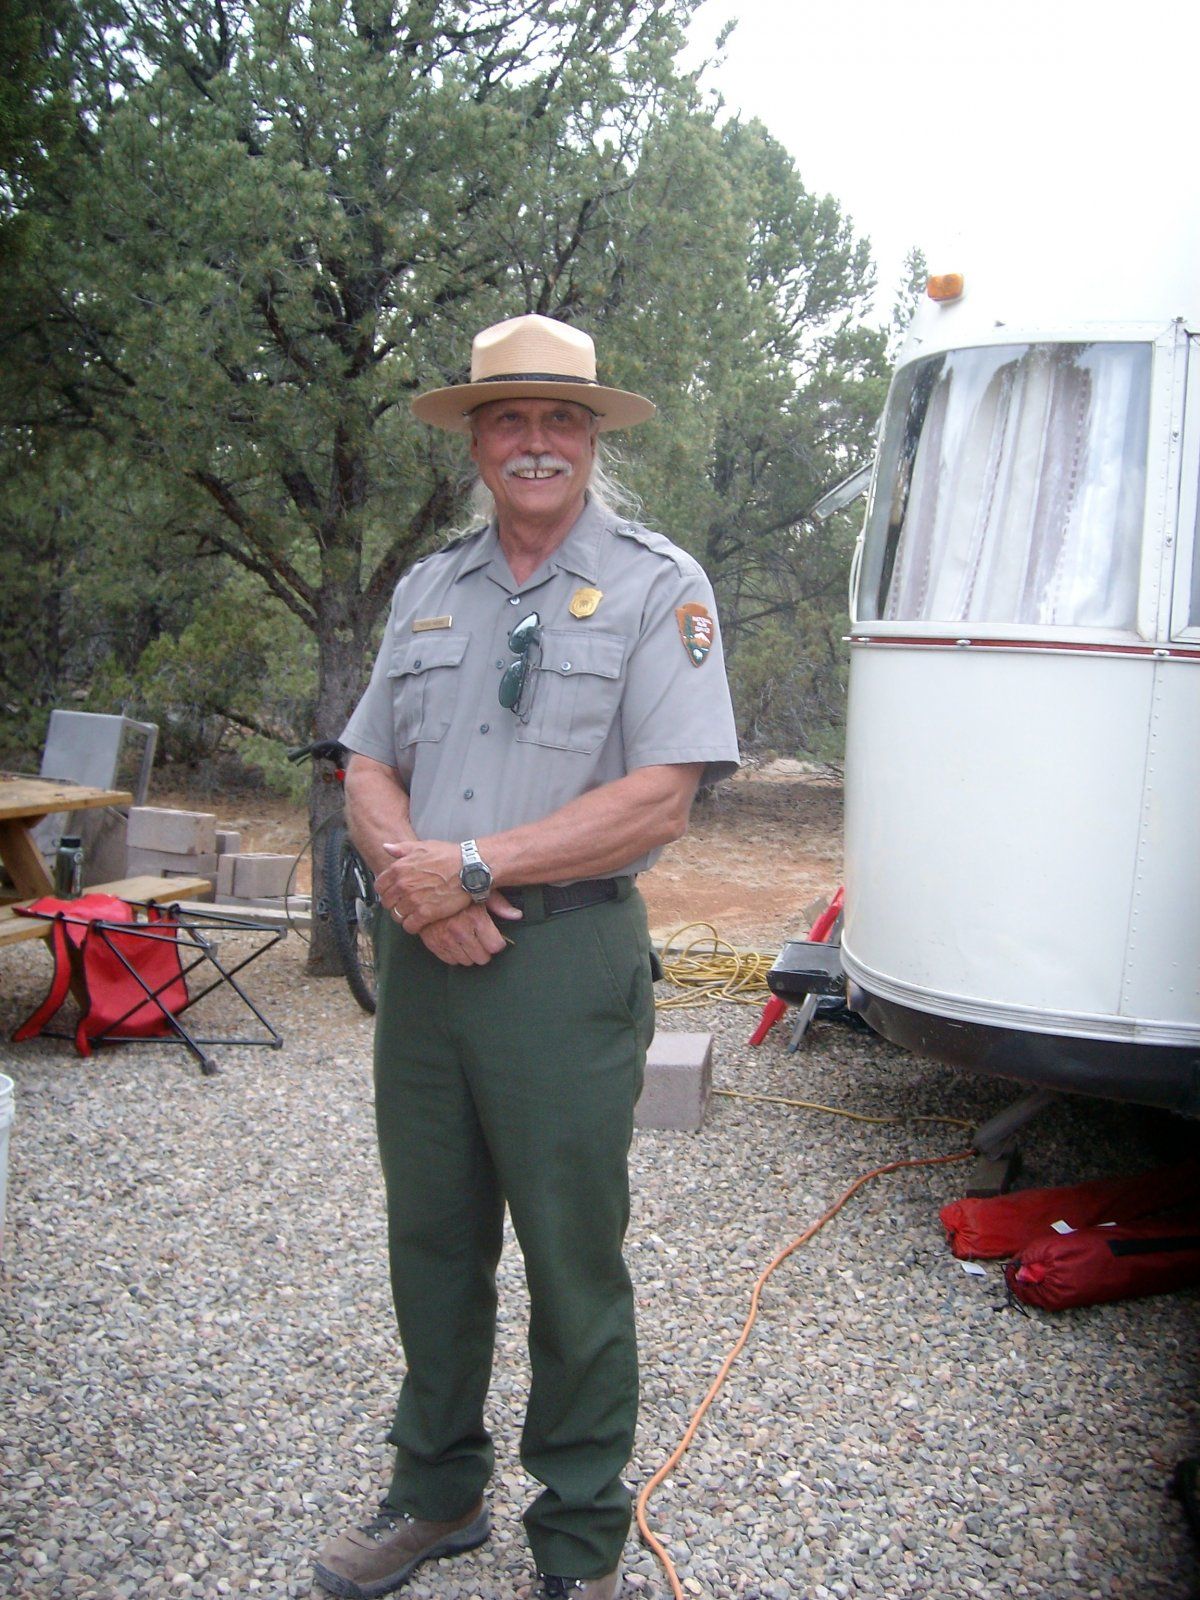 Click image for larger version  Name:Ranger Pete.jpg Views:92 Size:400.1 KB ID:134329